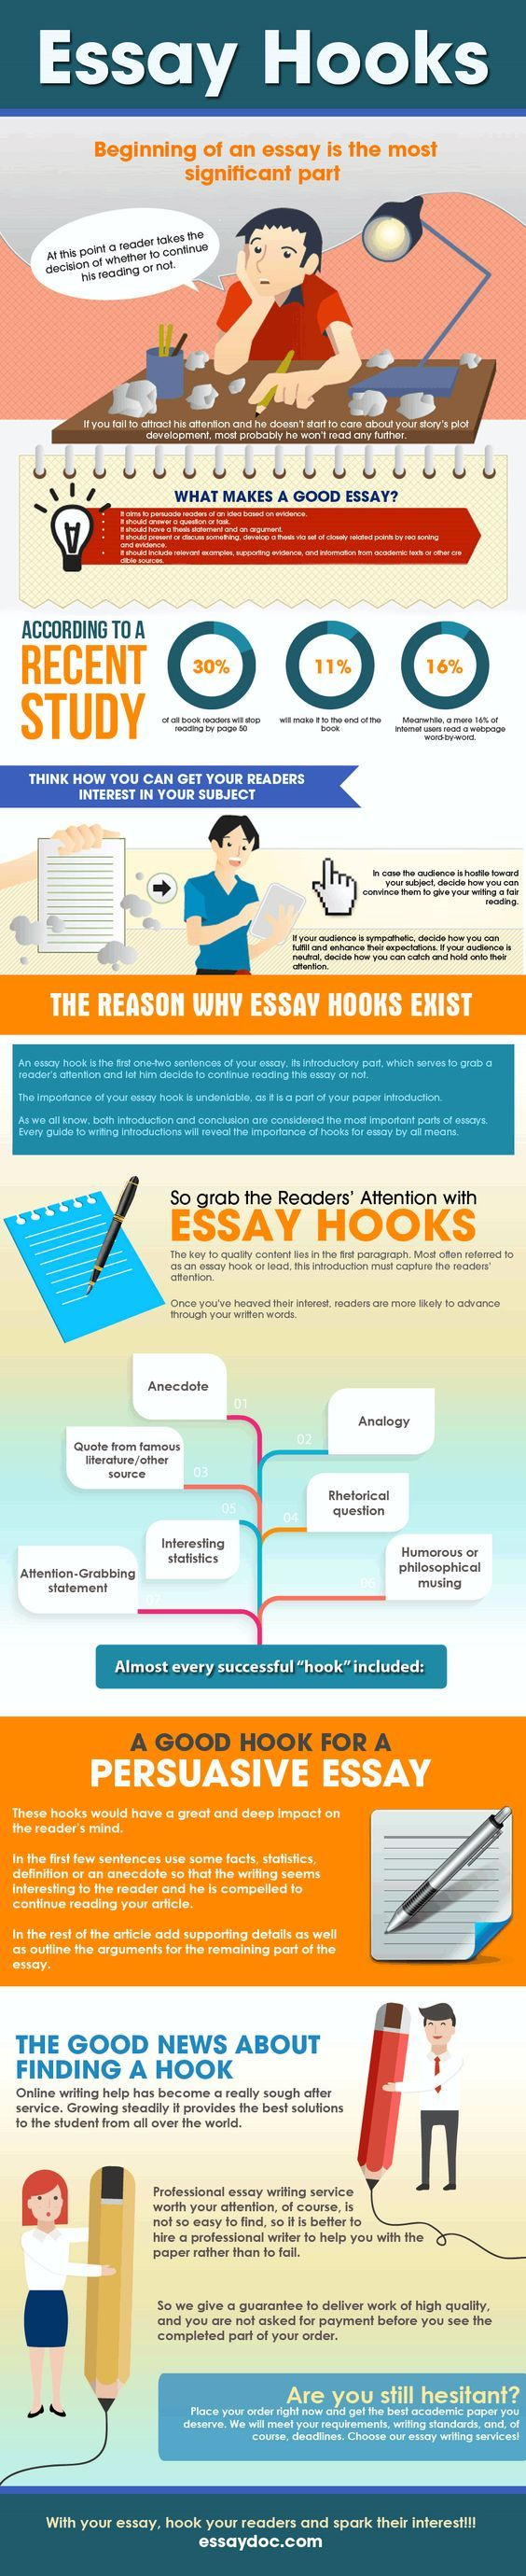 best essay writing ideas essay writing tips  nice how to write a cause effect essay definition writing steps argumentative